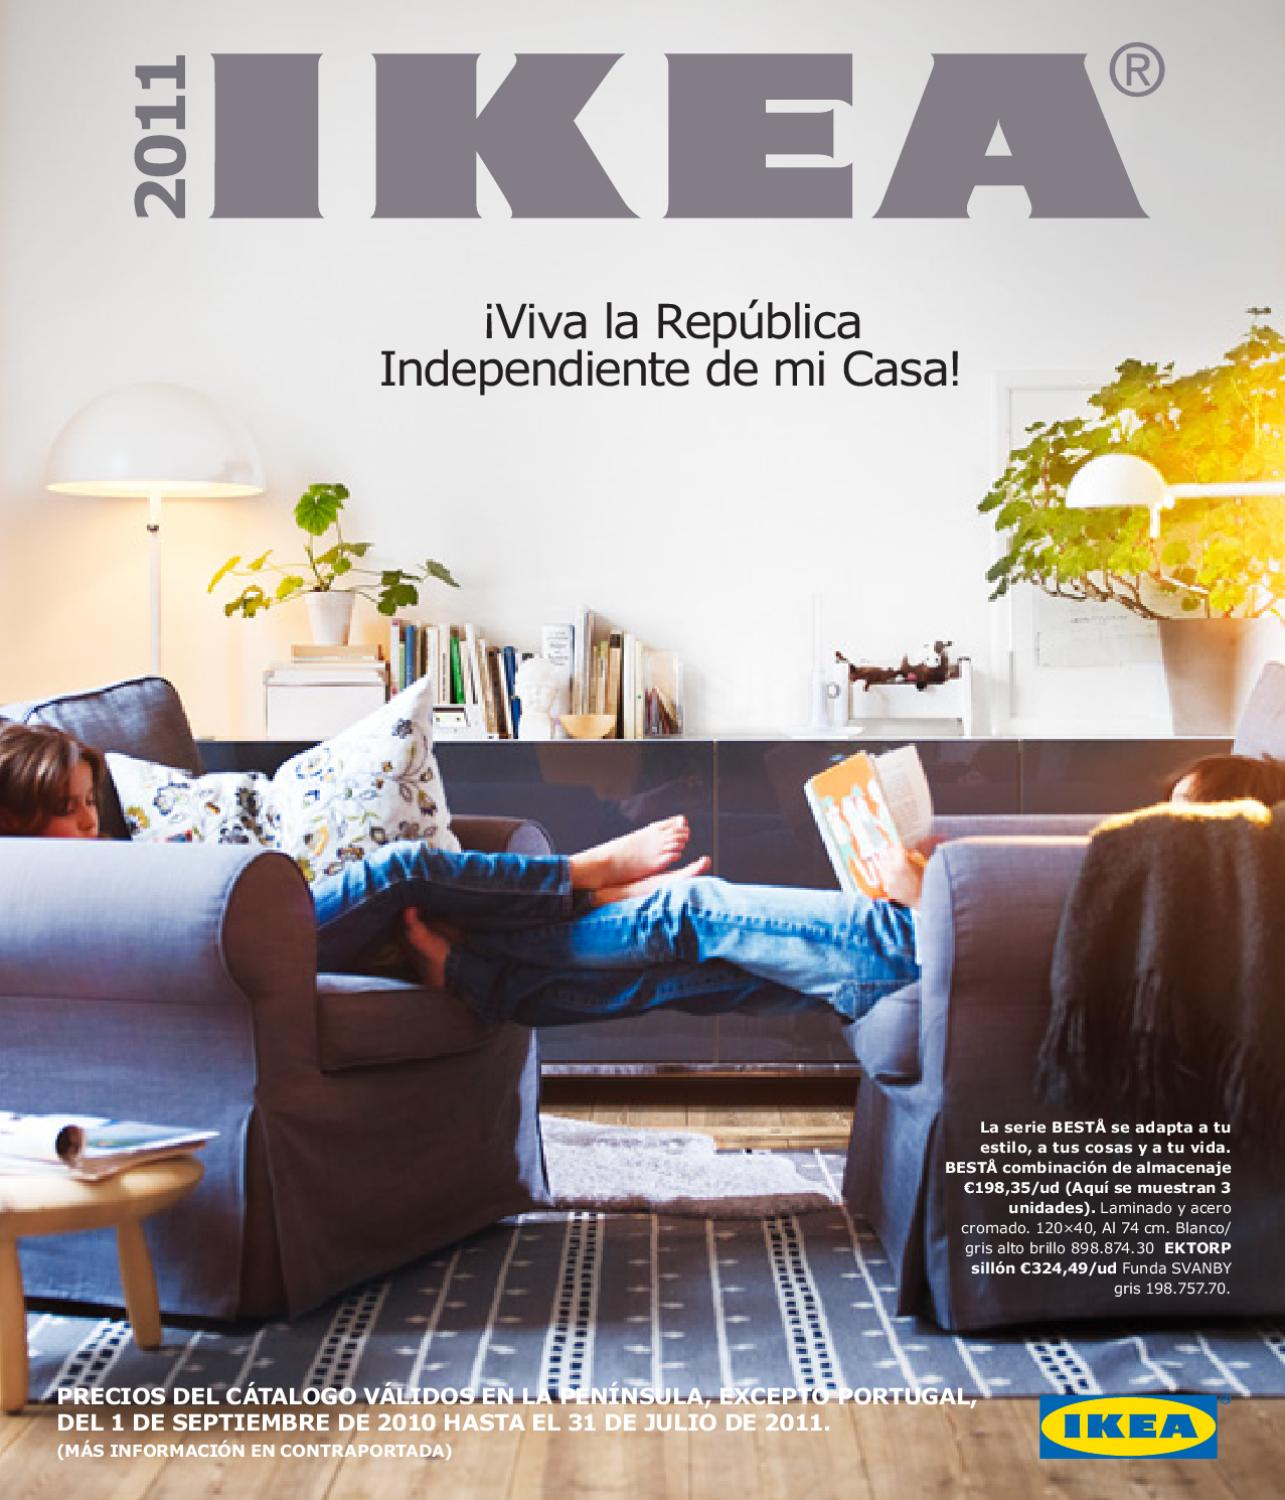 Catalogo IKEA 2011 by miguelator - issuu